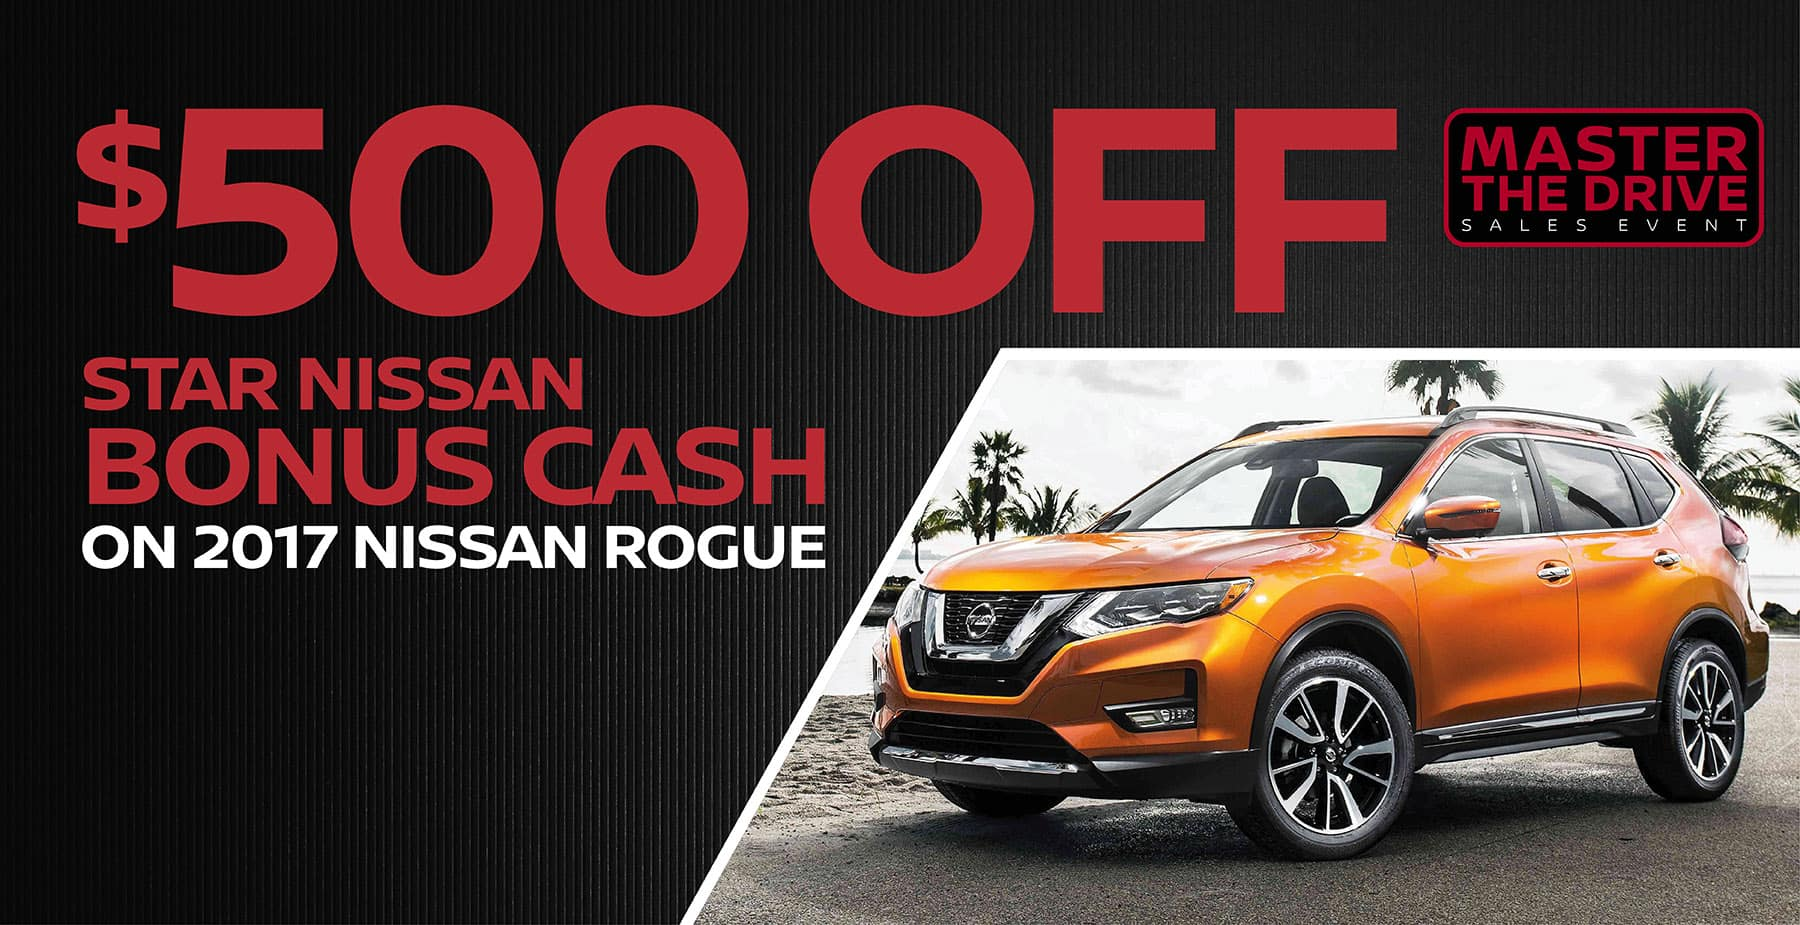 $500 Bonus Cash on the 2017 Nissan Rogue at Star Nissan  for Master the Drive Sales Event